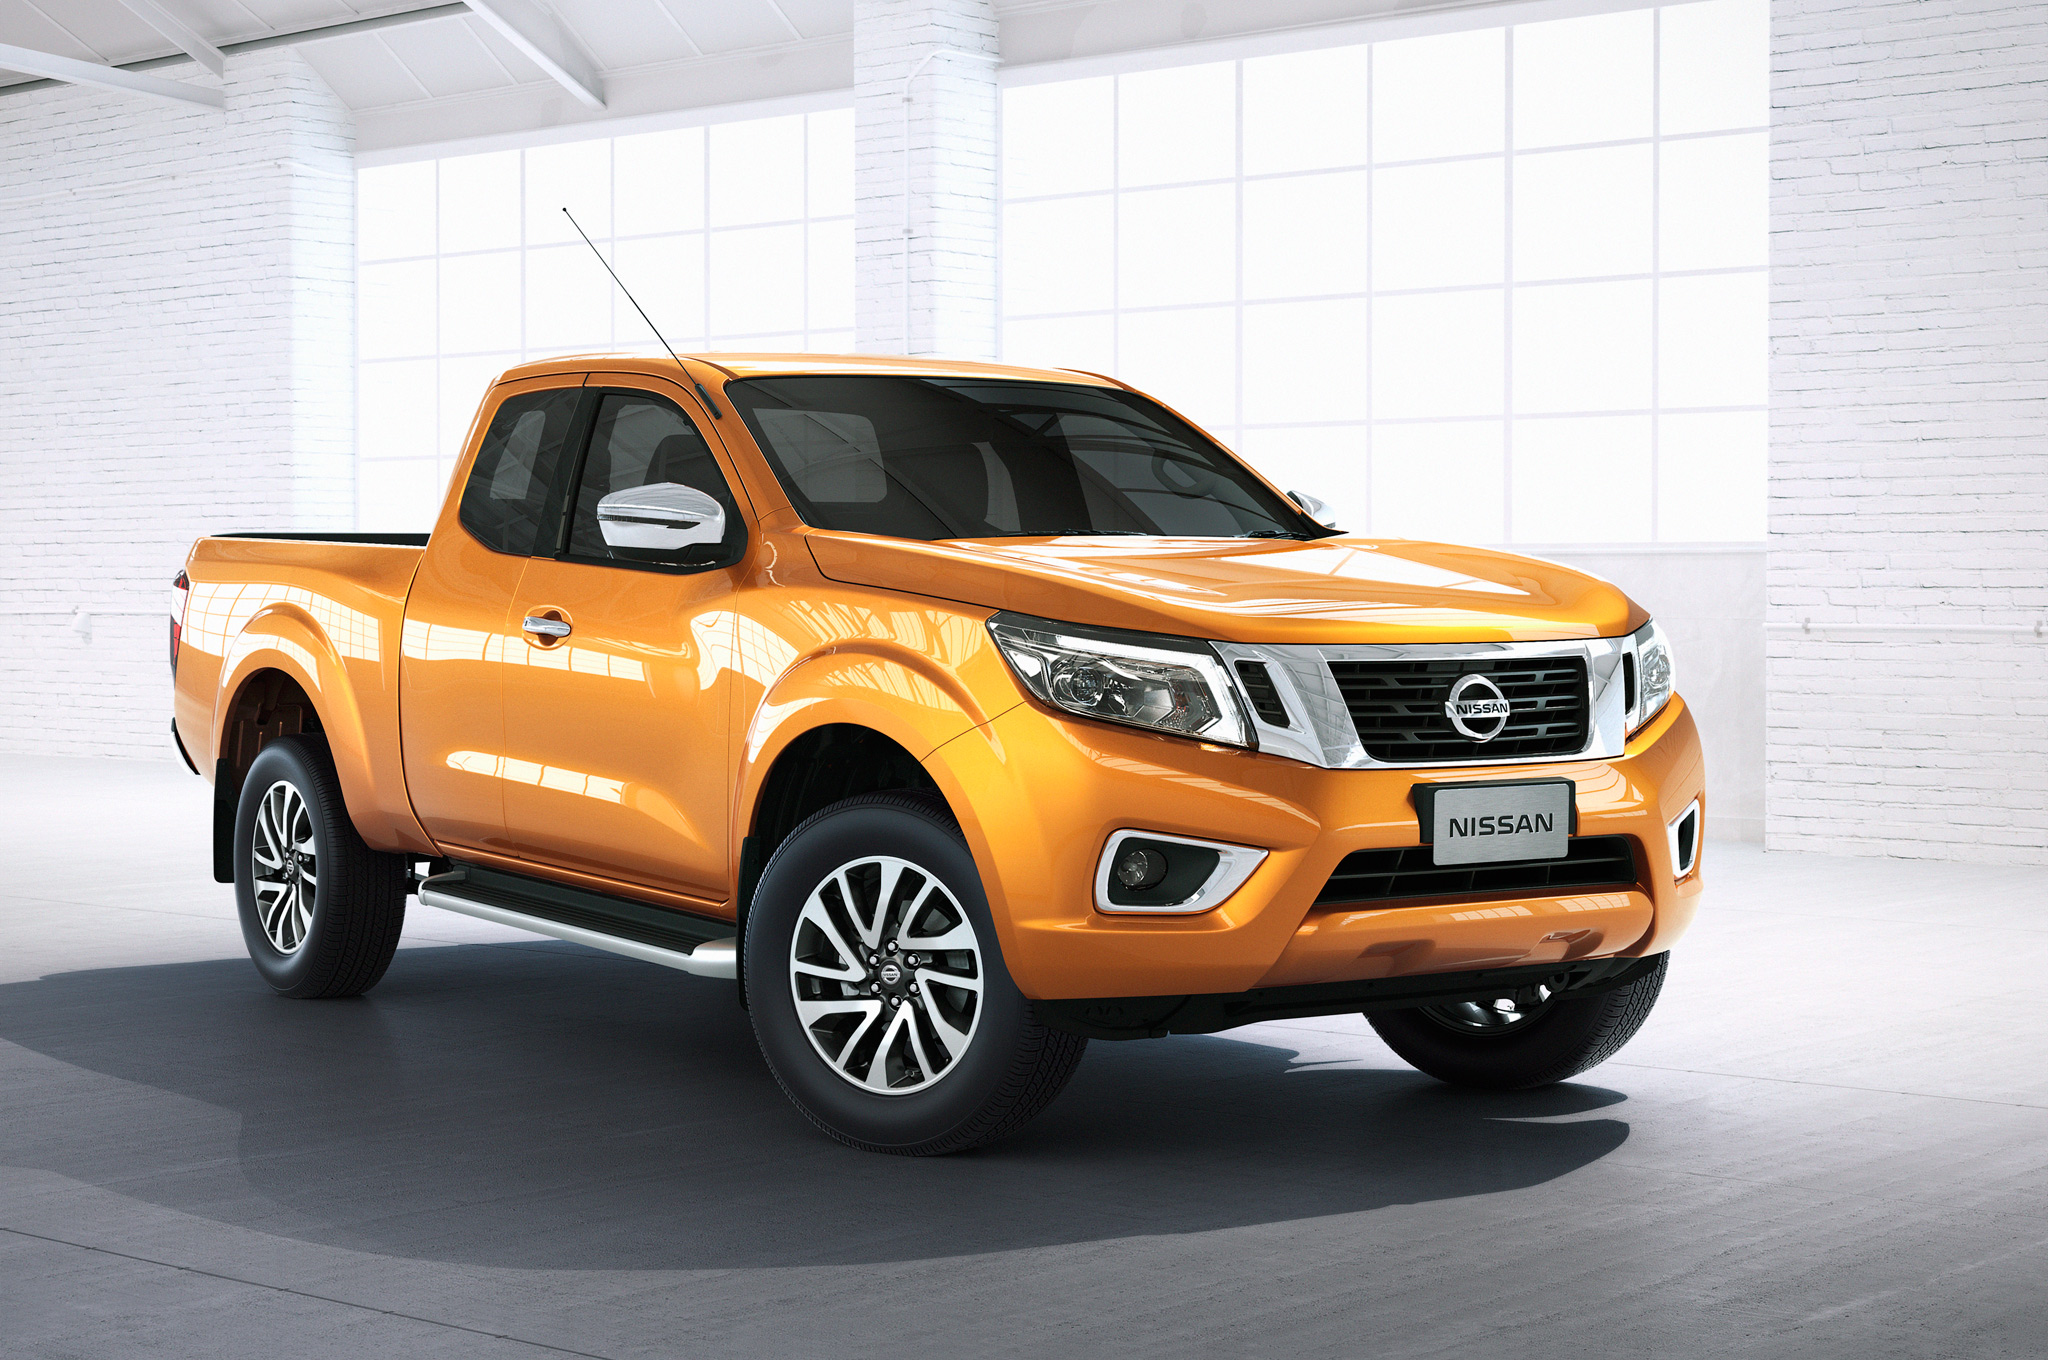 Nissan-NP300-Navara-12th-gen-front-side-view-King-Cab